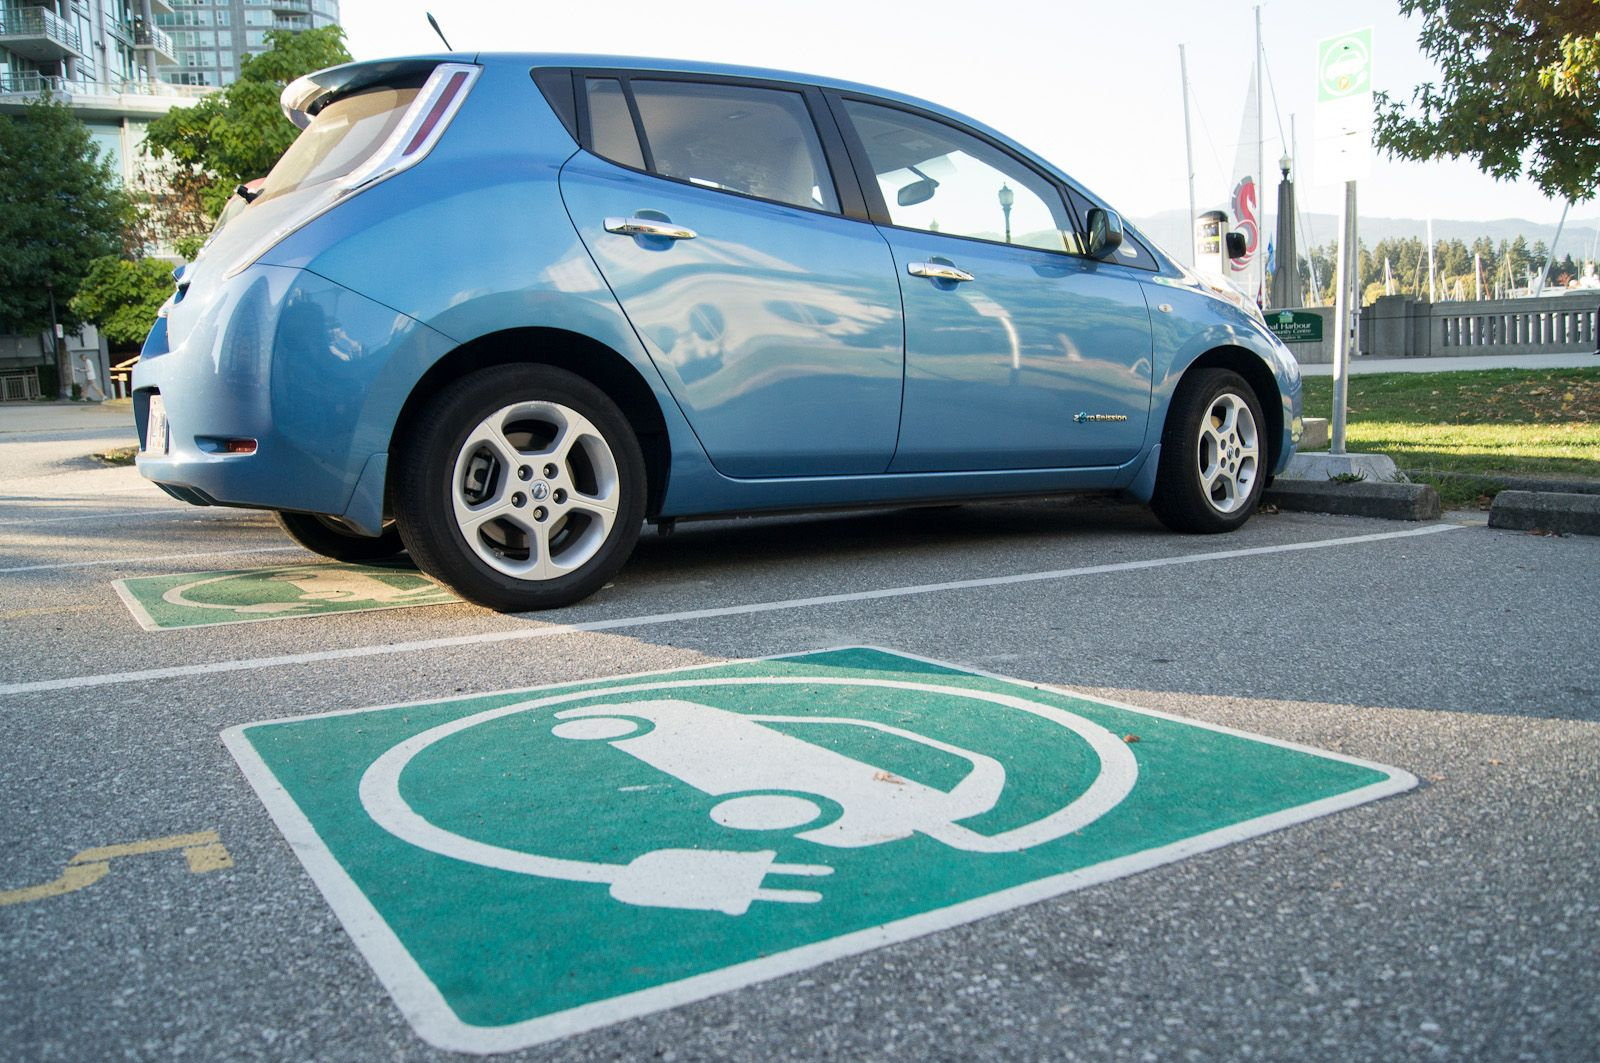 The U.S. Government Will Invest $4.5 Billion to Build Electric-Car Charging Stations For Anxiety-Free Driving